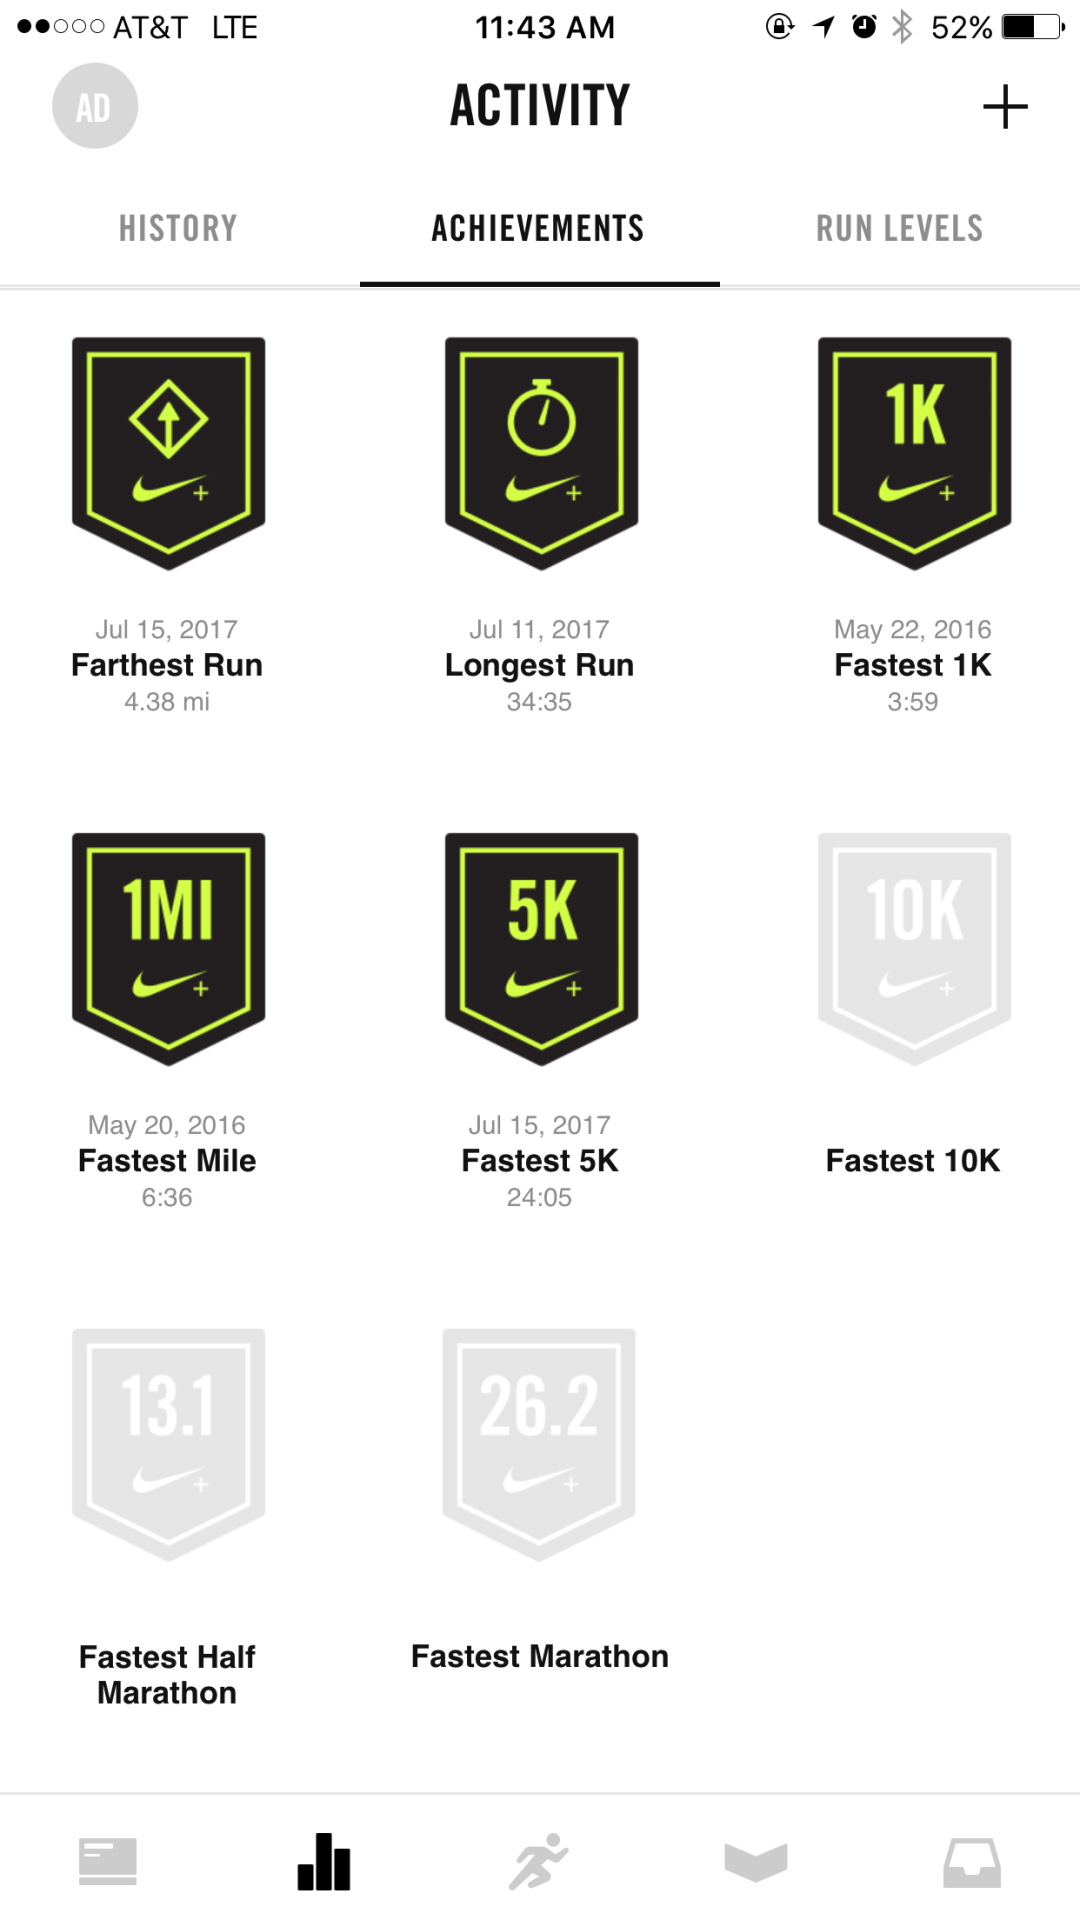 this is a mobile screenshot image of the nike run club app that shows the activitiy screen with a list of achievements. these nike achievement badges are an example of gamification and rewarding users to increase motivation